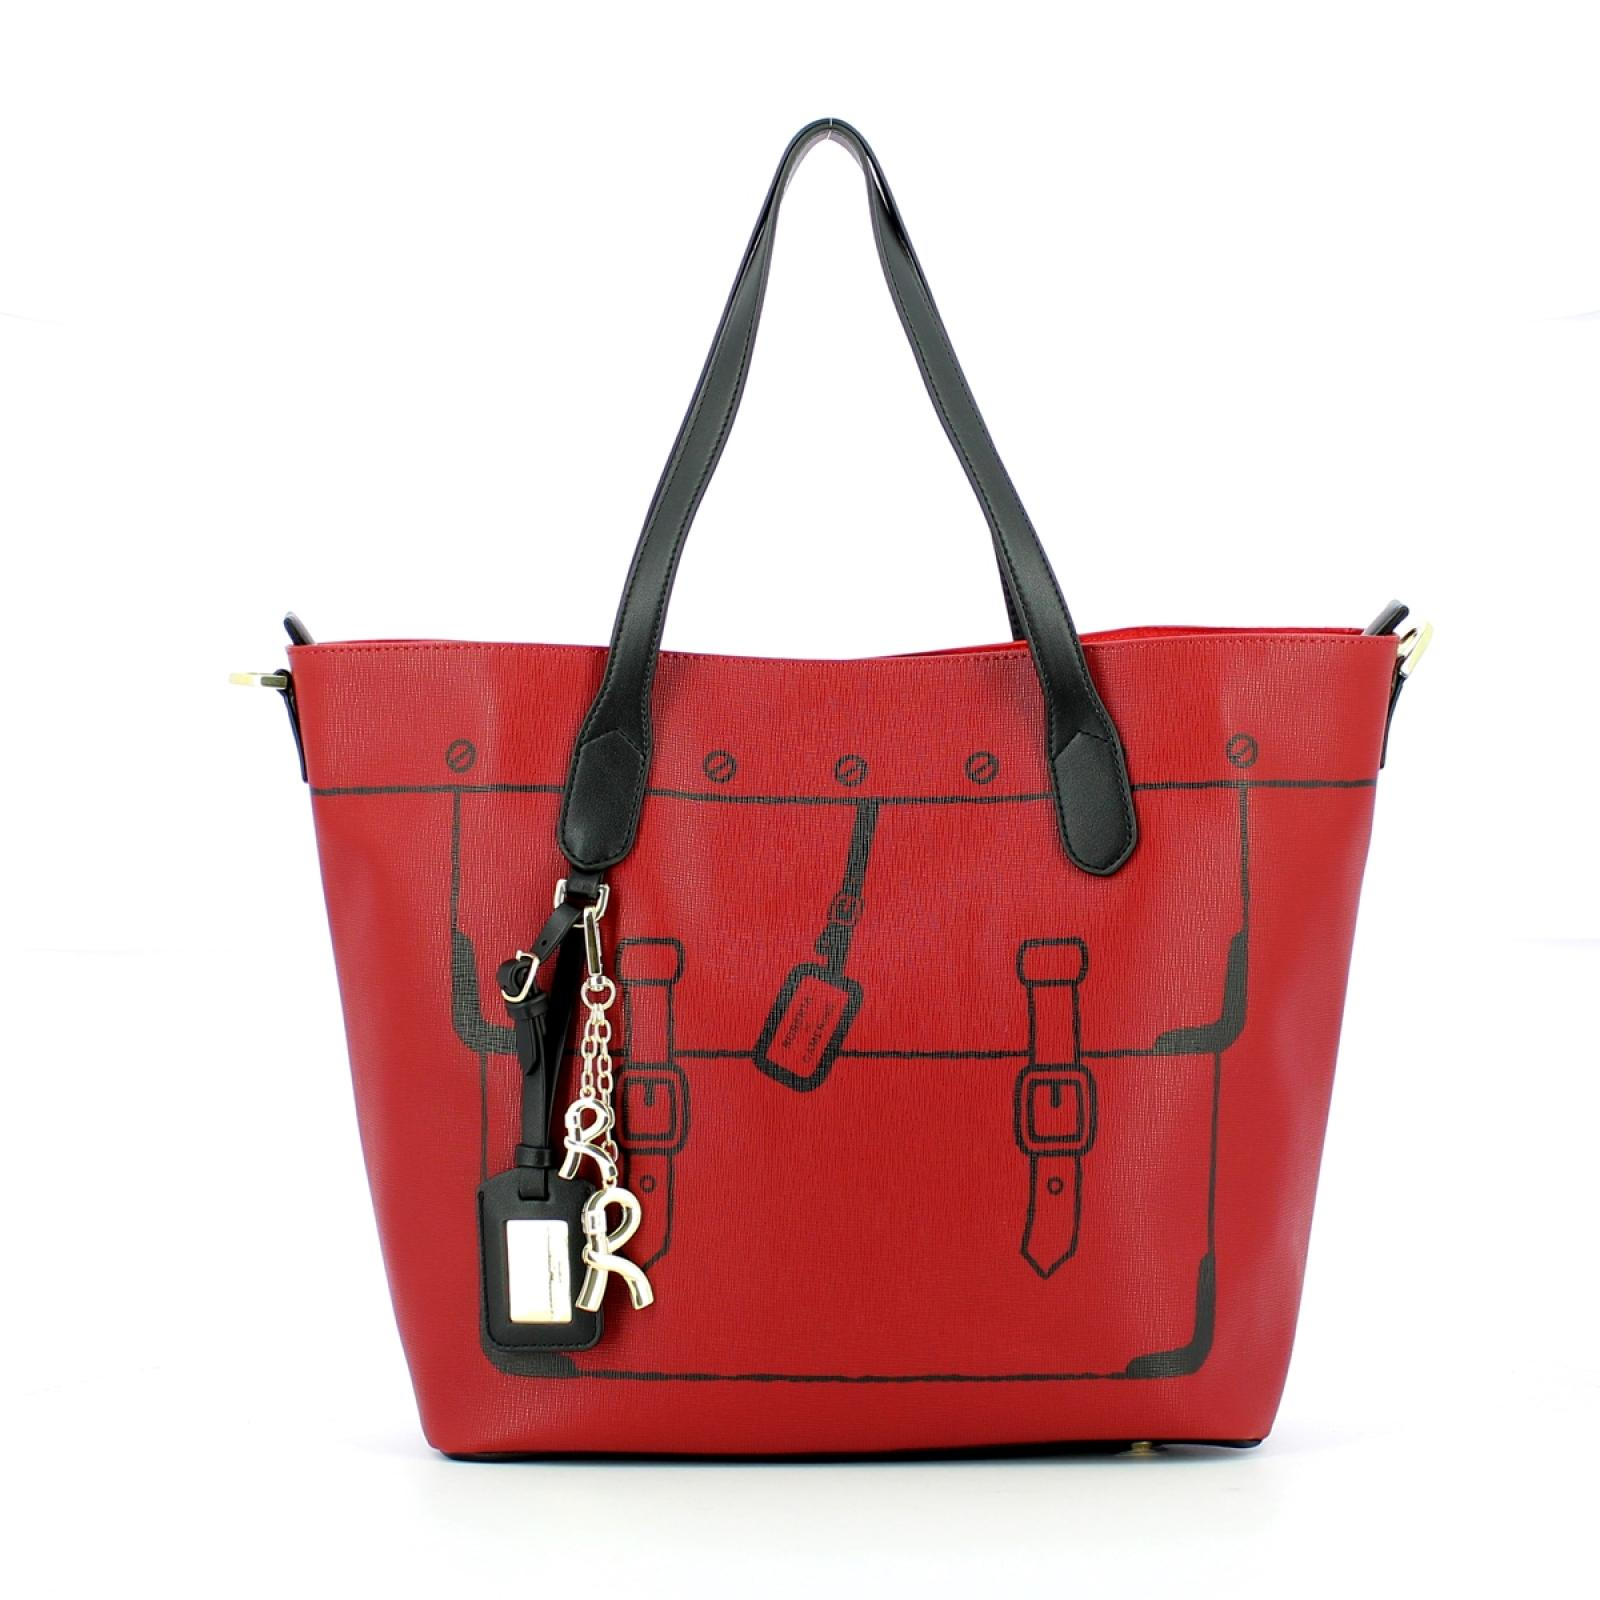 Roberta Di Camerino Shopper Grafic Medium - 1